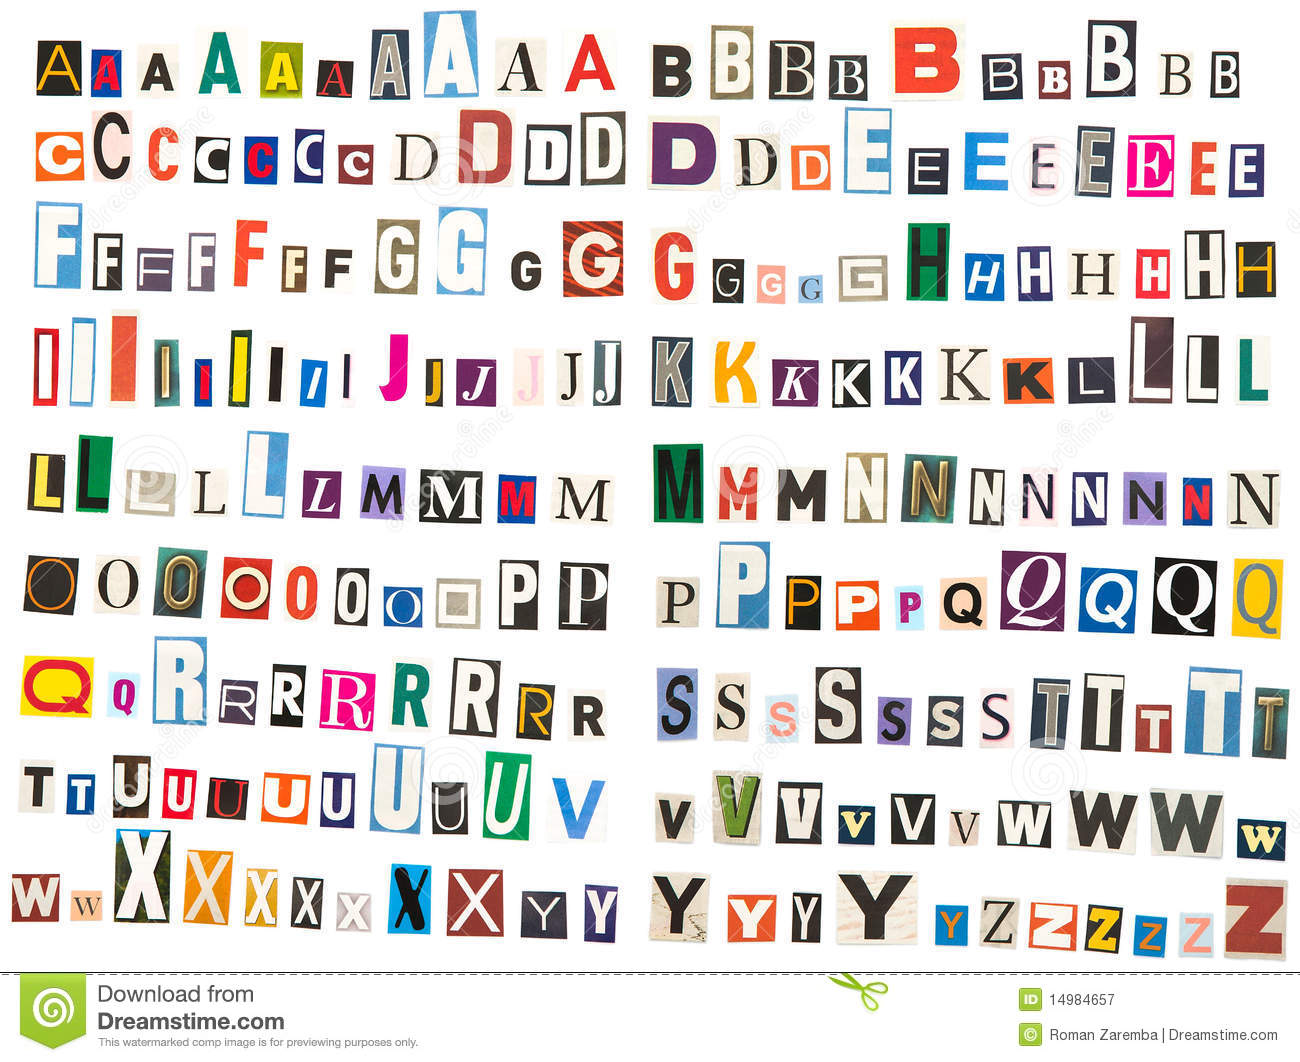 How Many Letters Are In The Alphabet Text